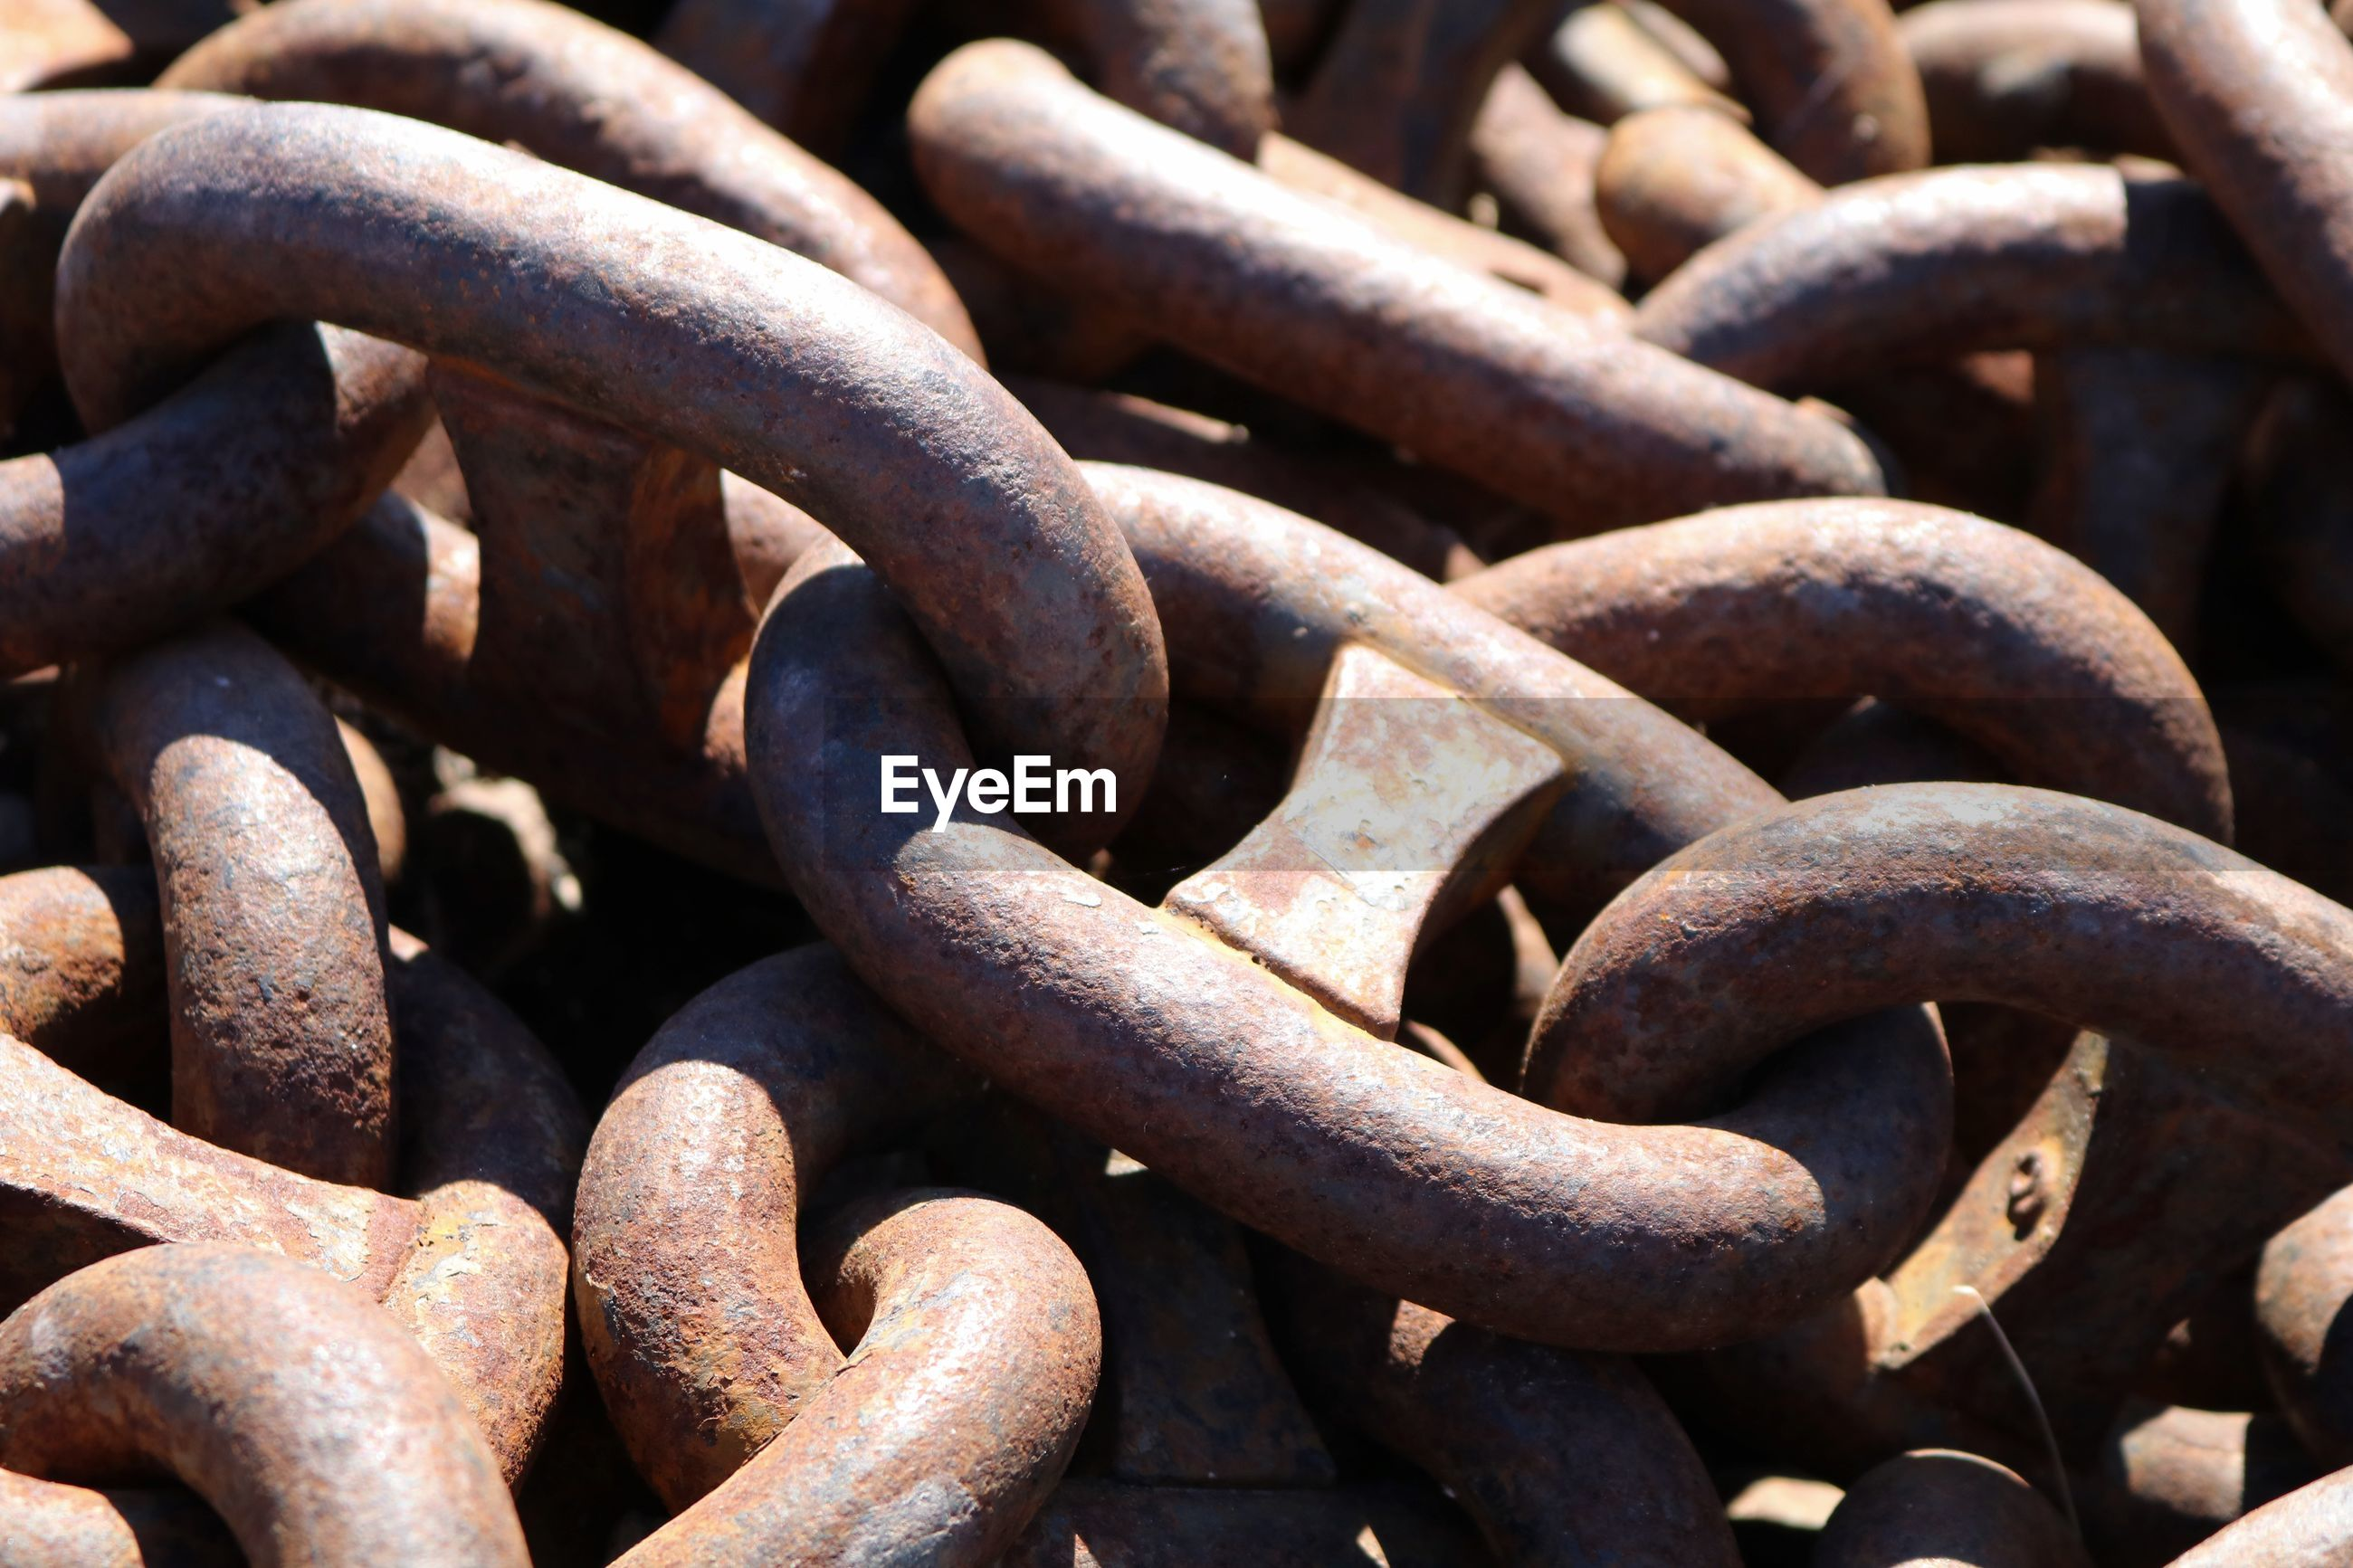 Close-up of rusty metallic chain